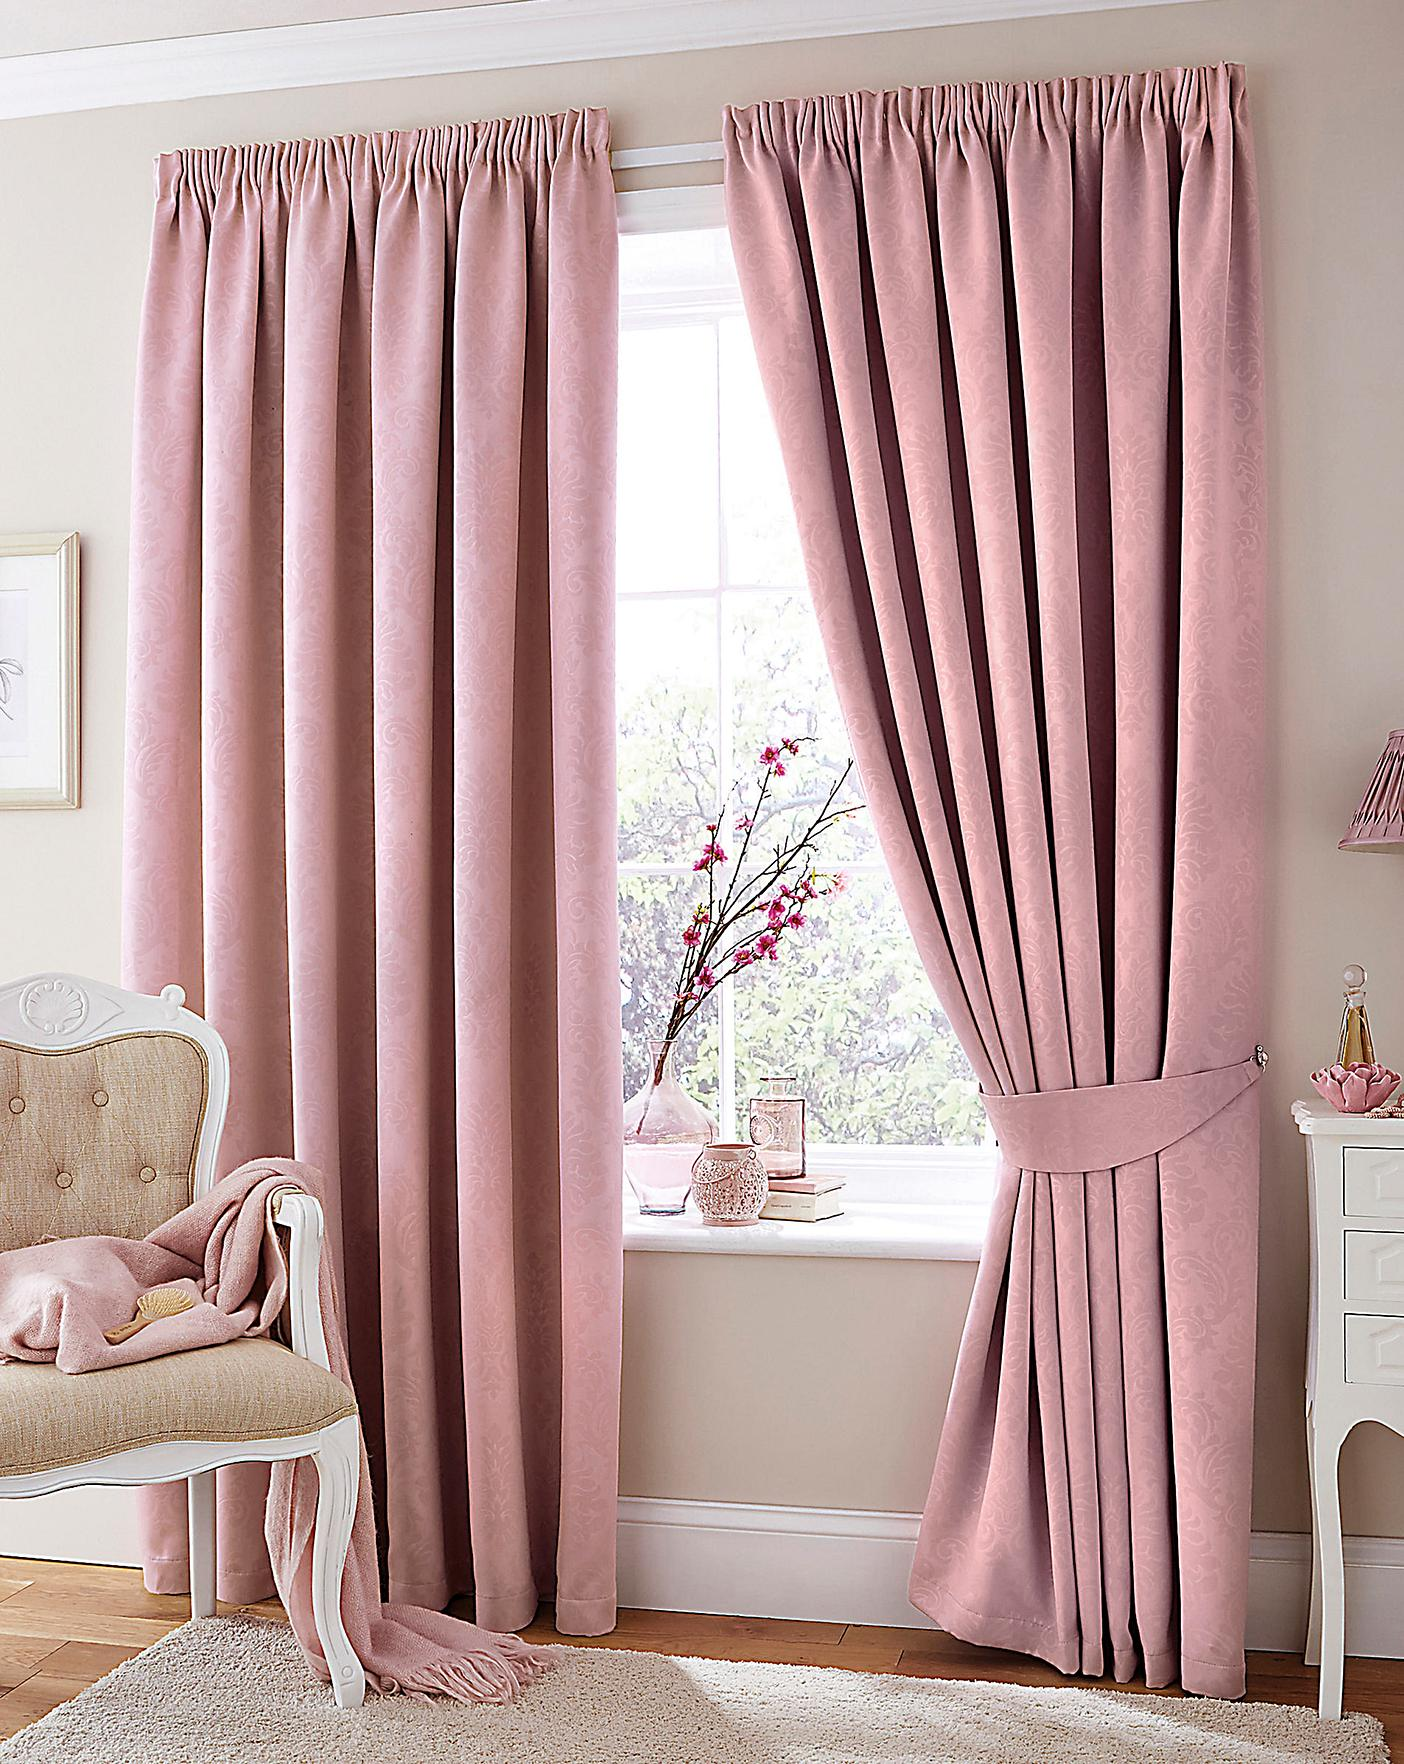 Woven Damask Blackout Curtains Crazy Clearance